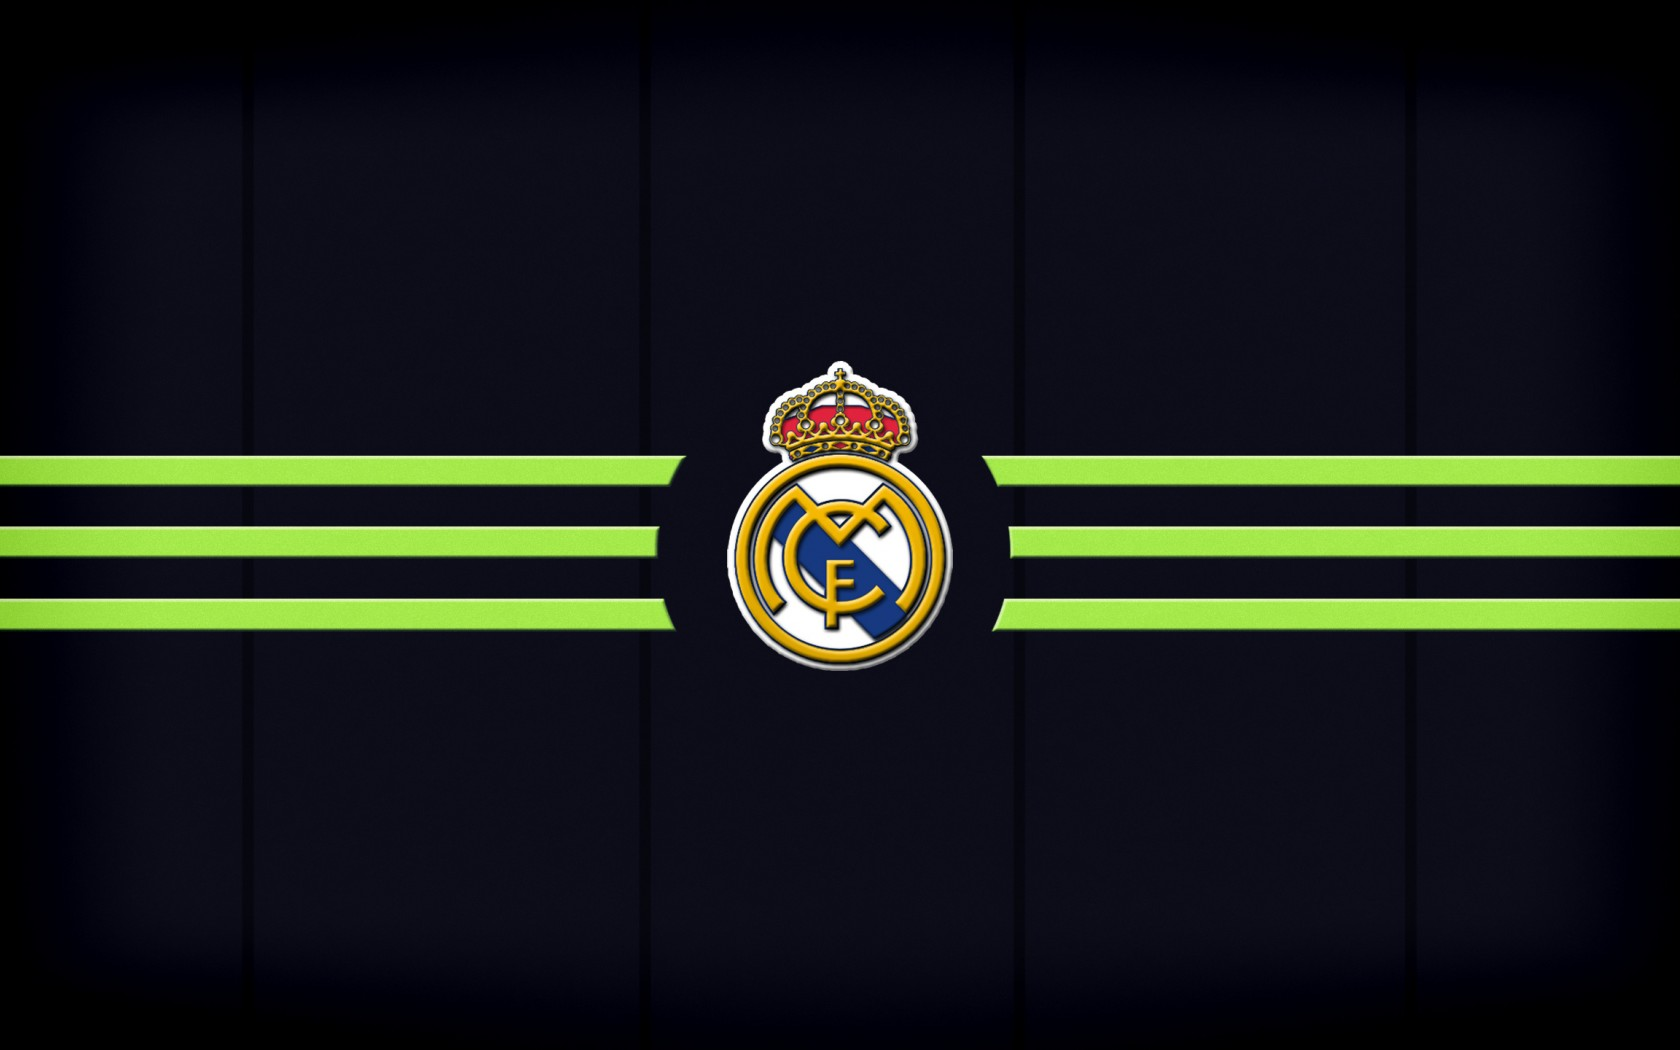 Real Madrid Fc Logo Wallpaper Hd Wallpapers Background - 1680x1050